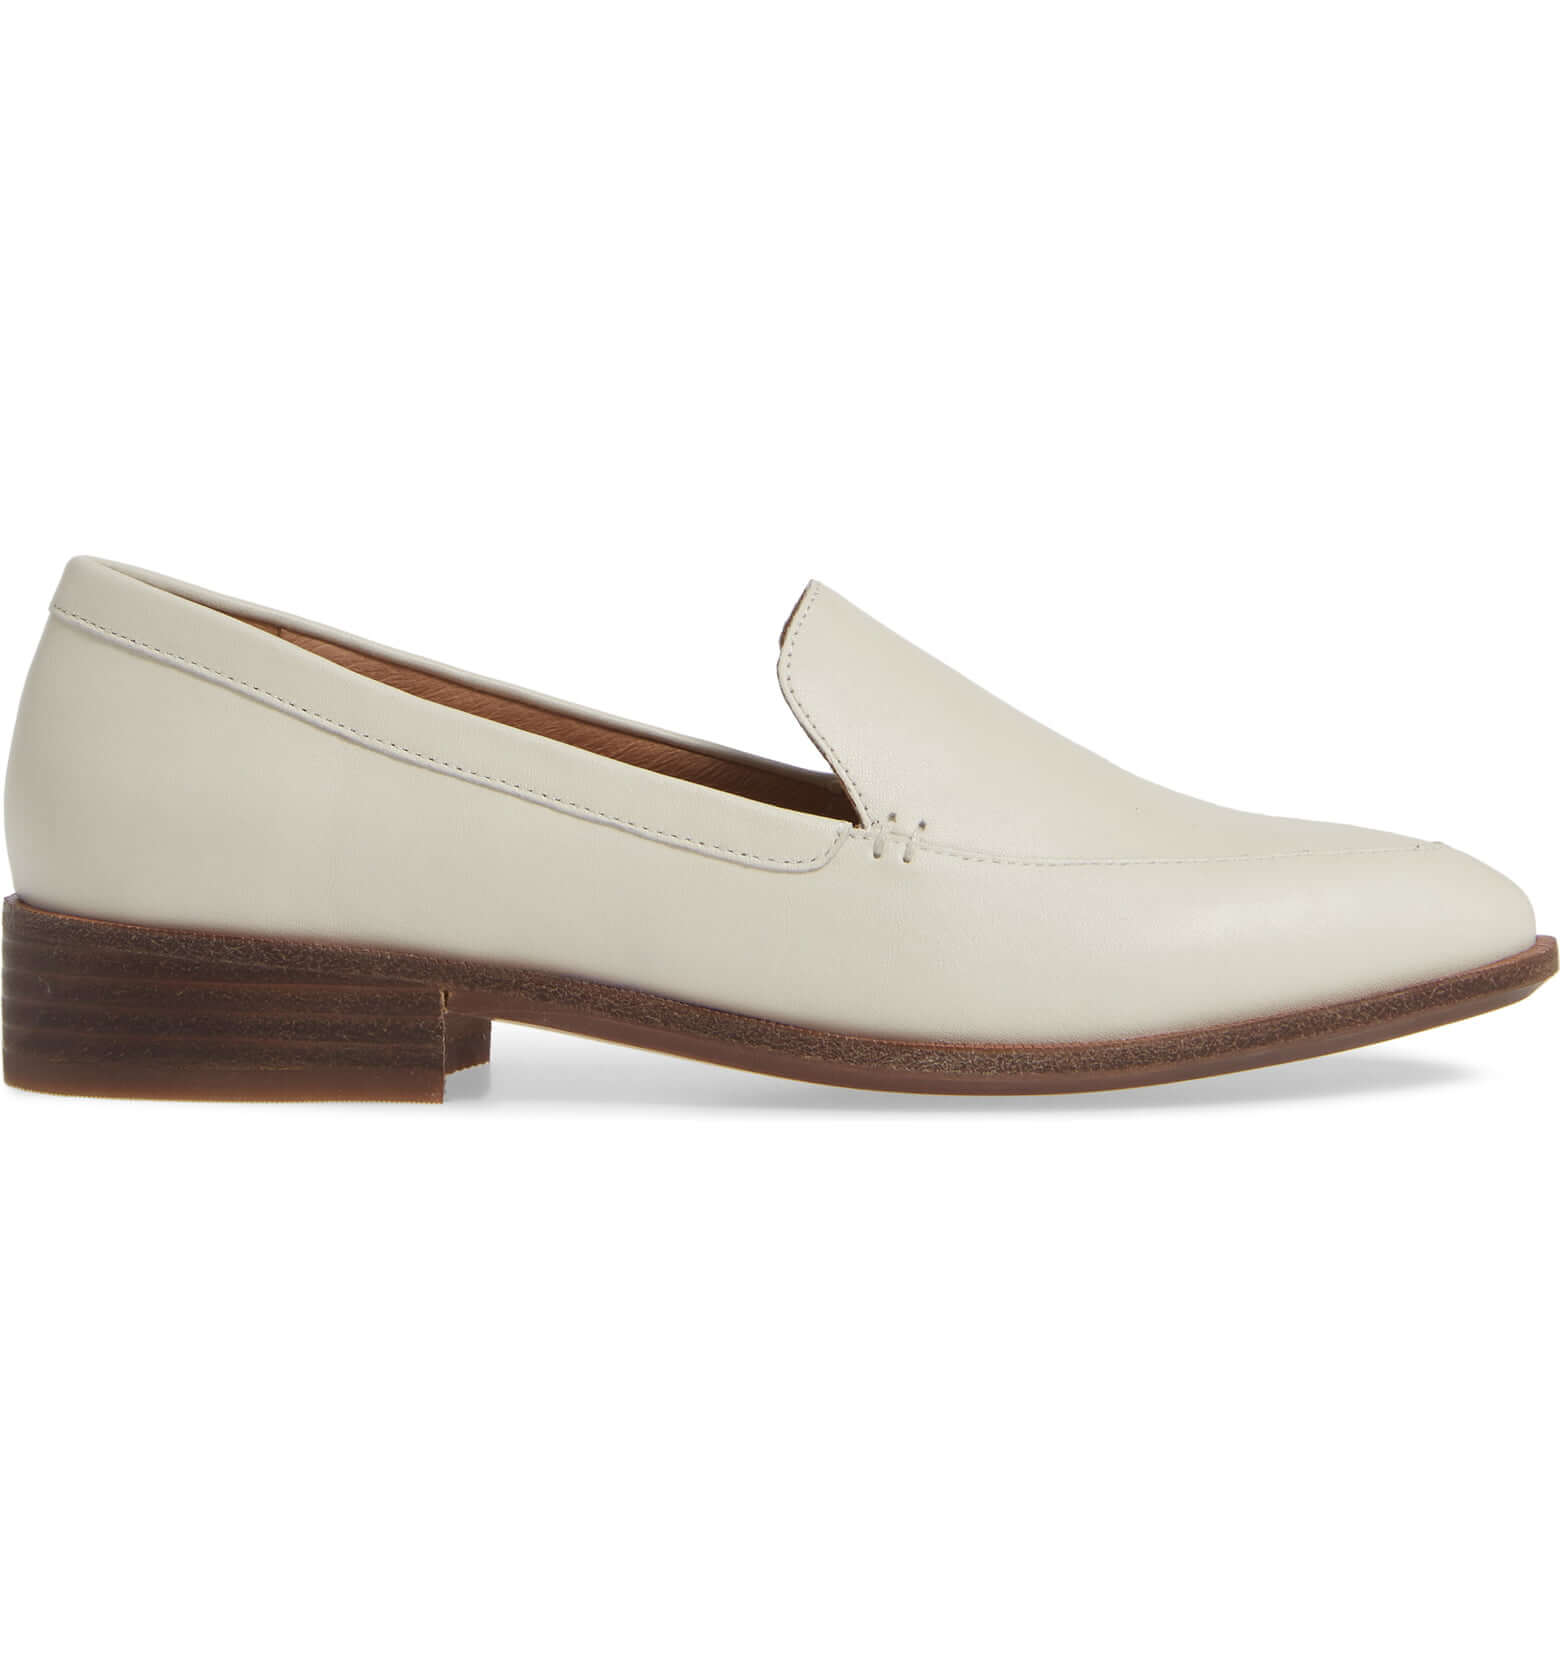 madewell-shoes-the-frances-loafer.jpeg